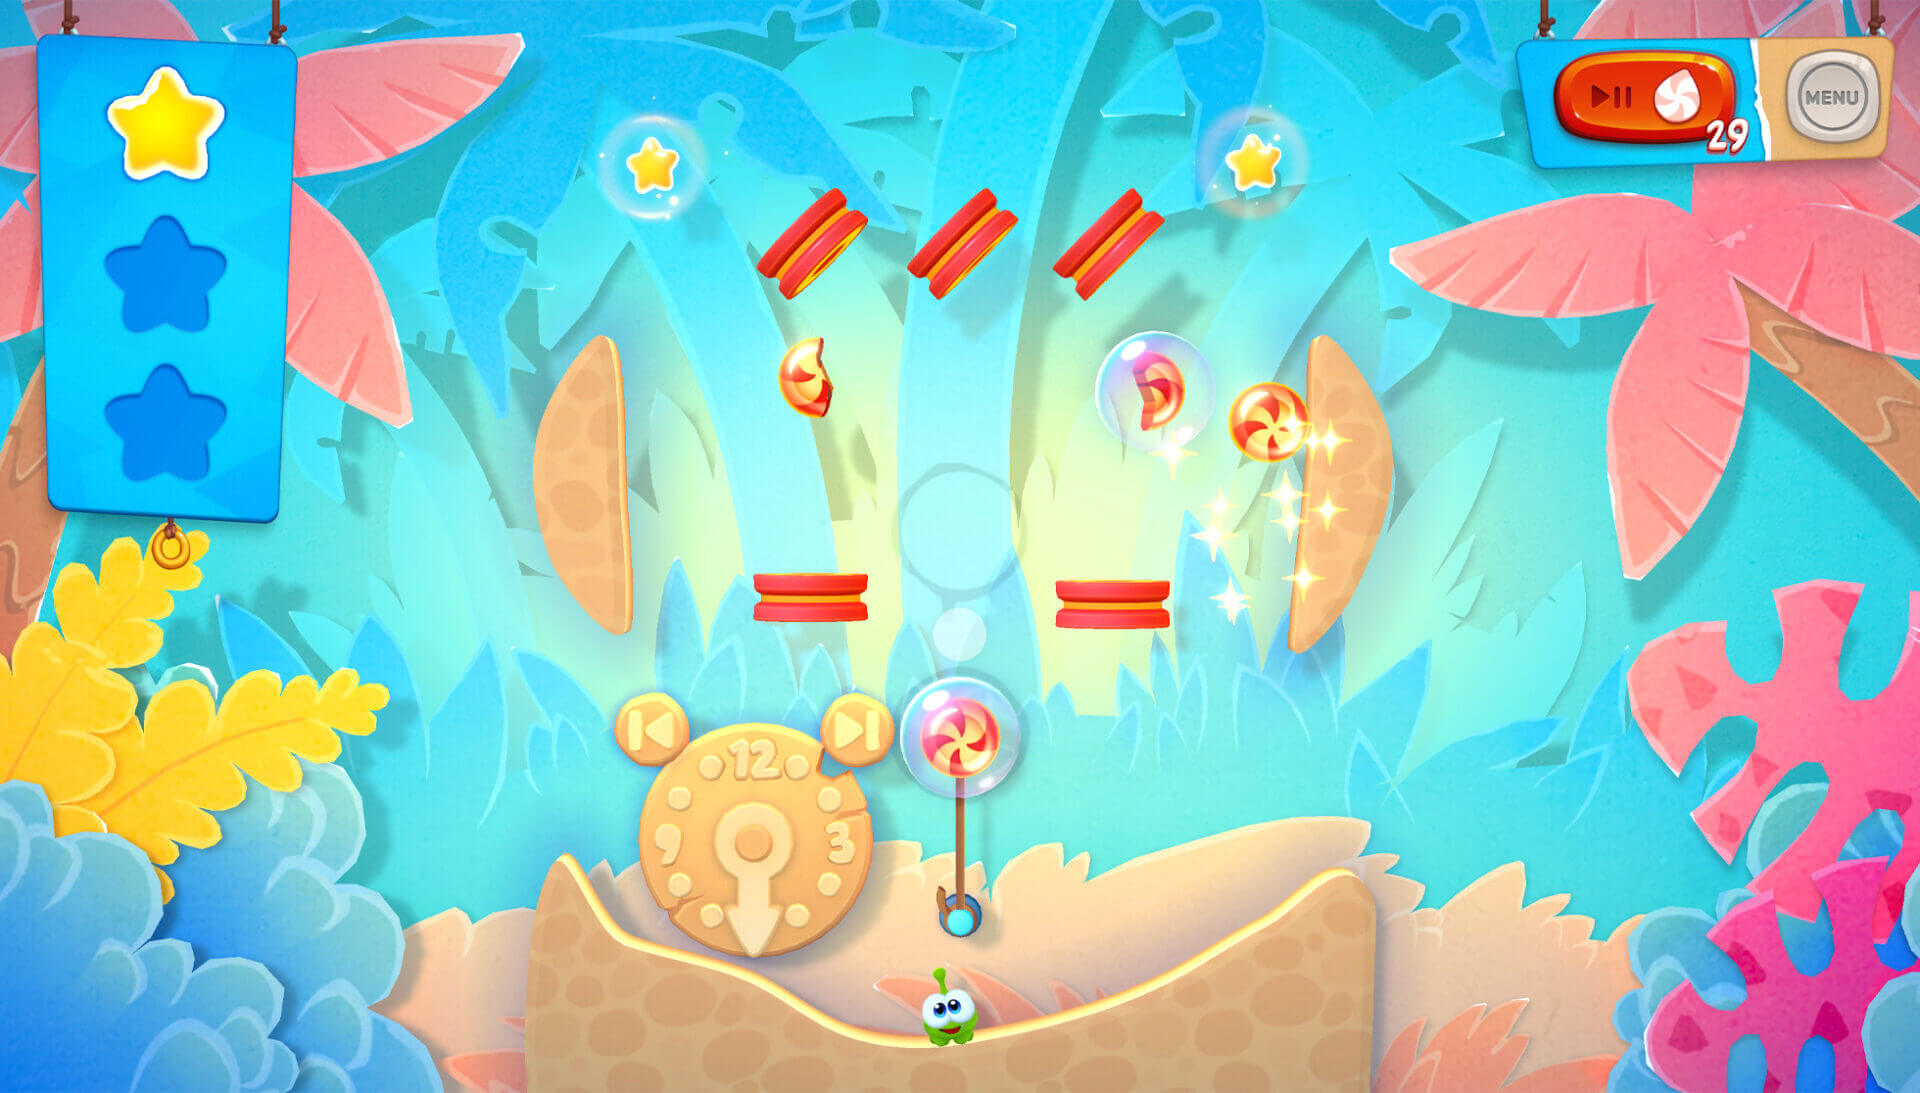 Apple Arcade: Cut the Rope Remastered für iPhone, iPad, Apple TV und Mac (Bildrechte: Apple)